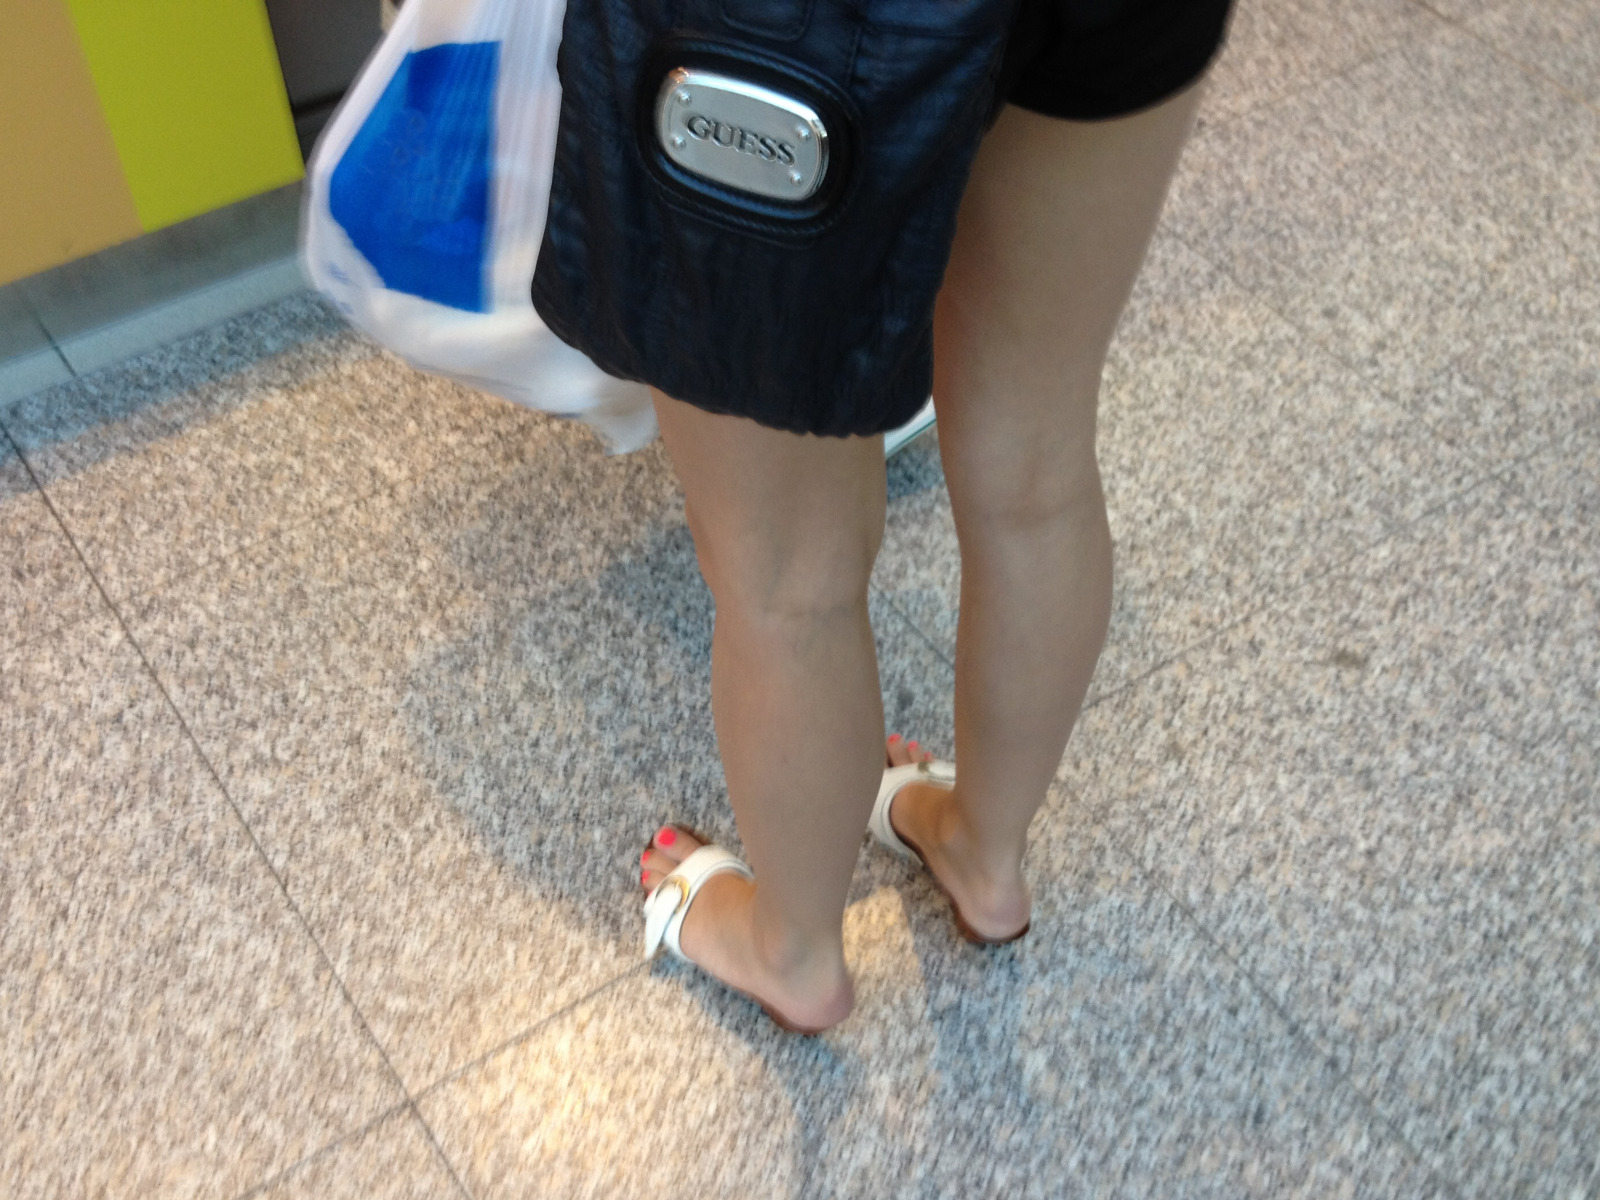 Candid Sexy Feet: Young girl with sexy toes